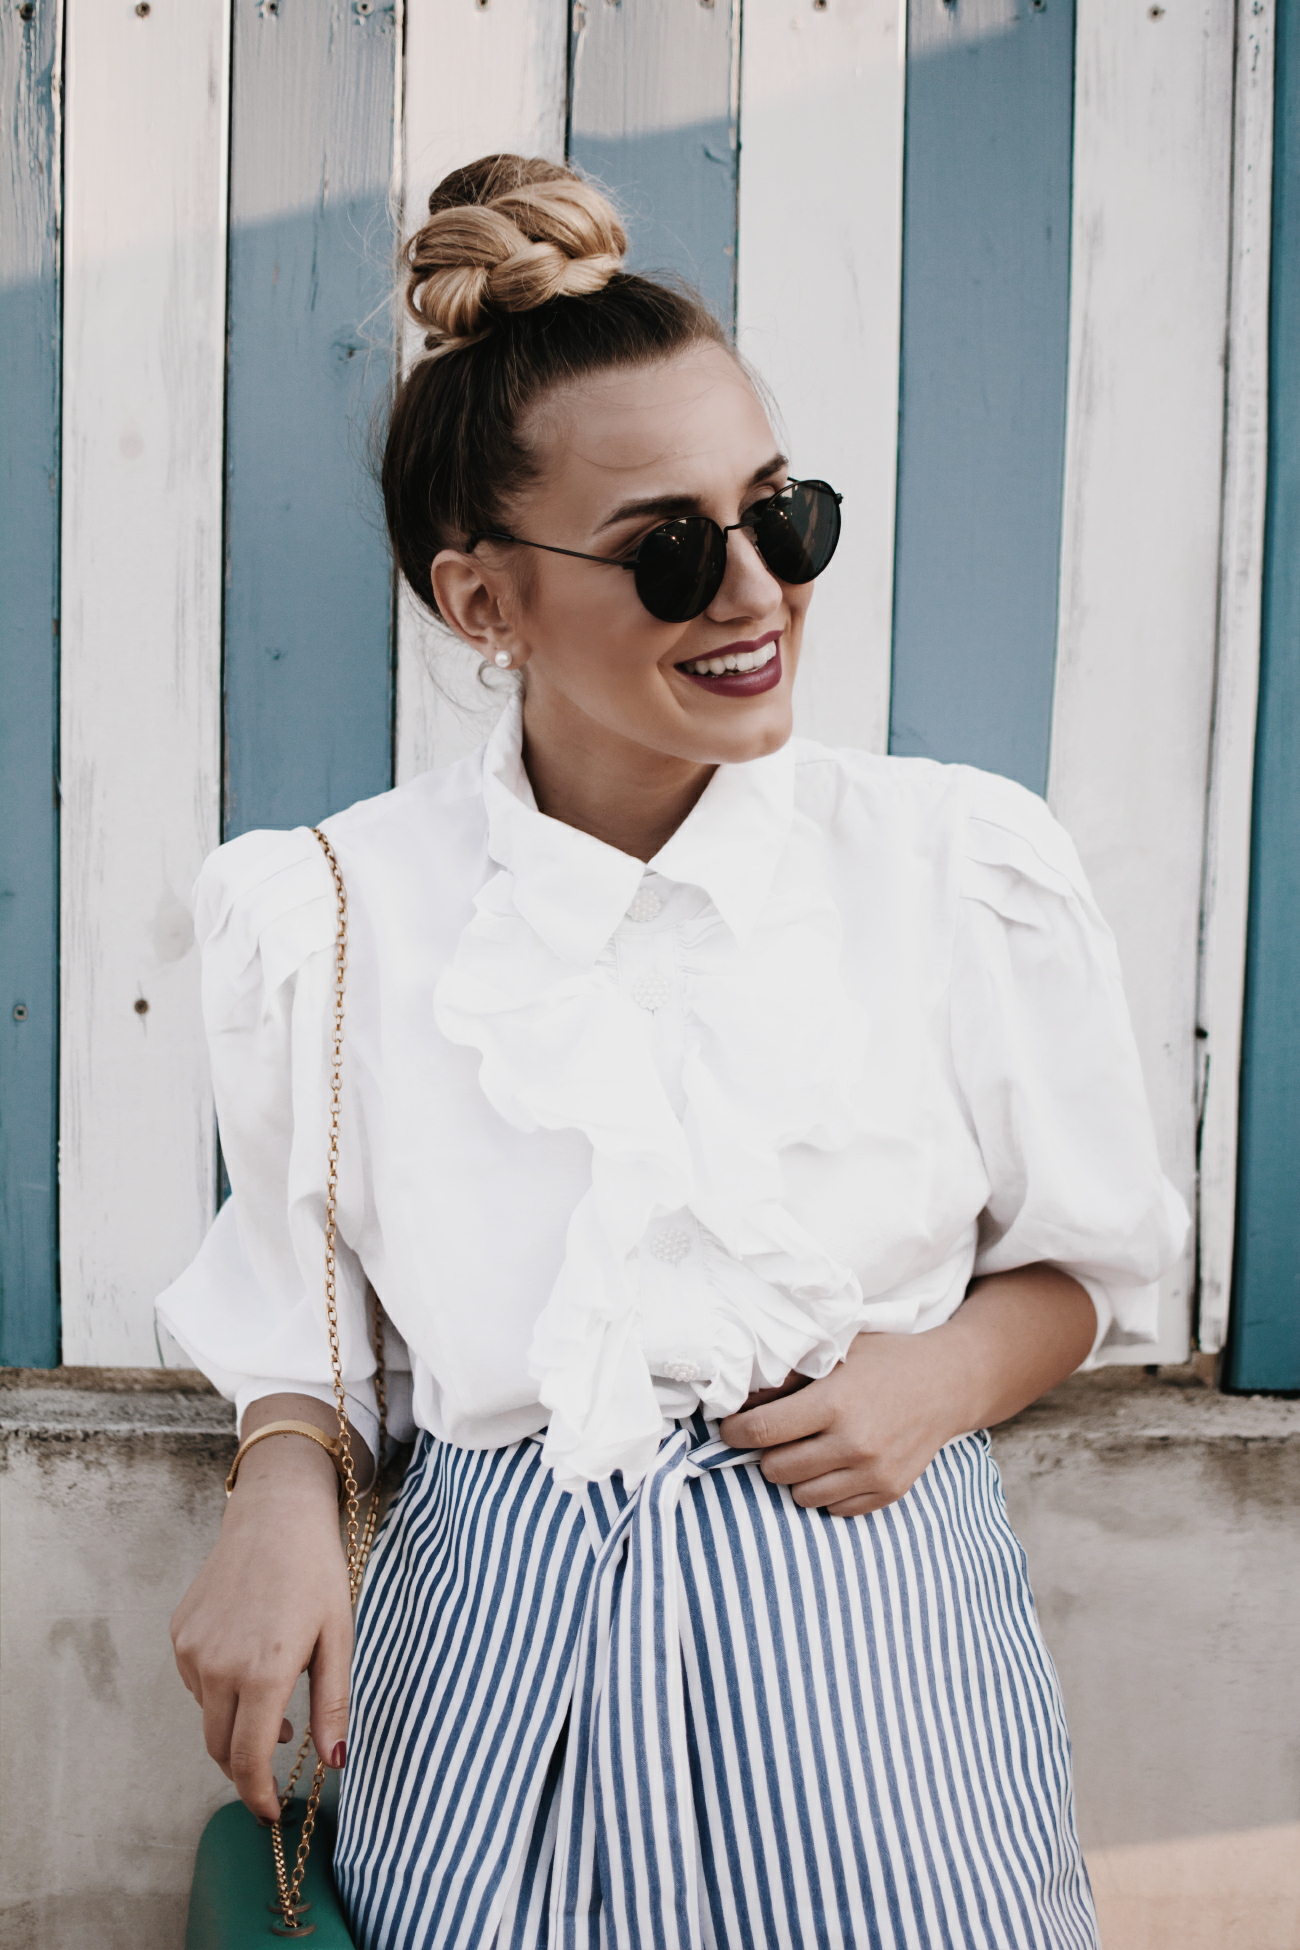 80s fashion vibes & outfit inspiration via @fleurdemode